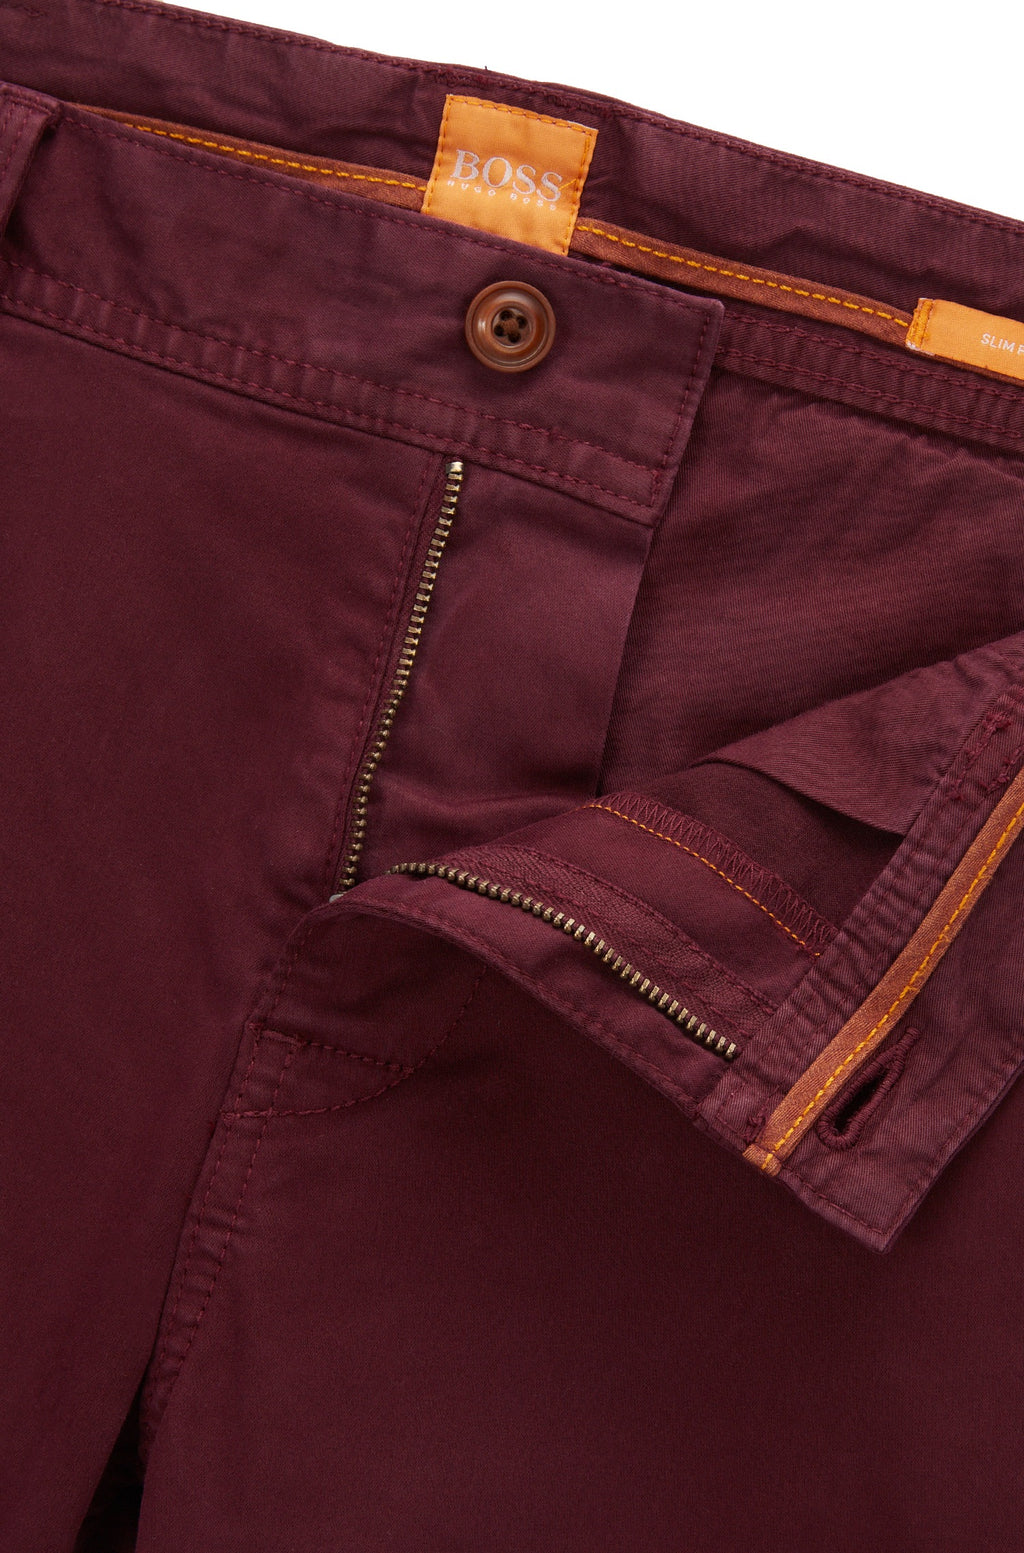 BOSS Orange - Schino Slim-fit chinos in brushed stretch cotton